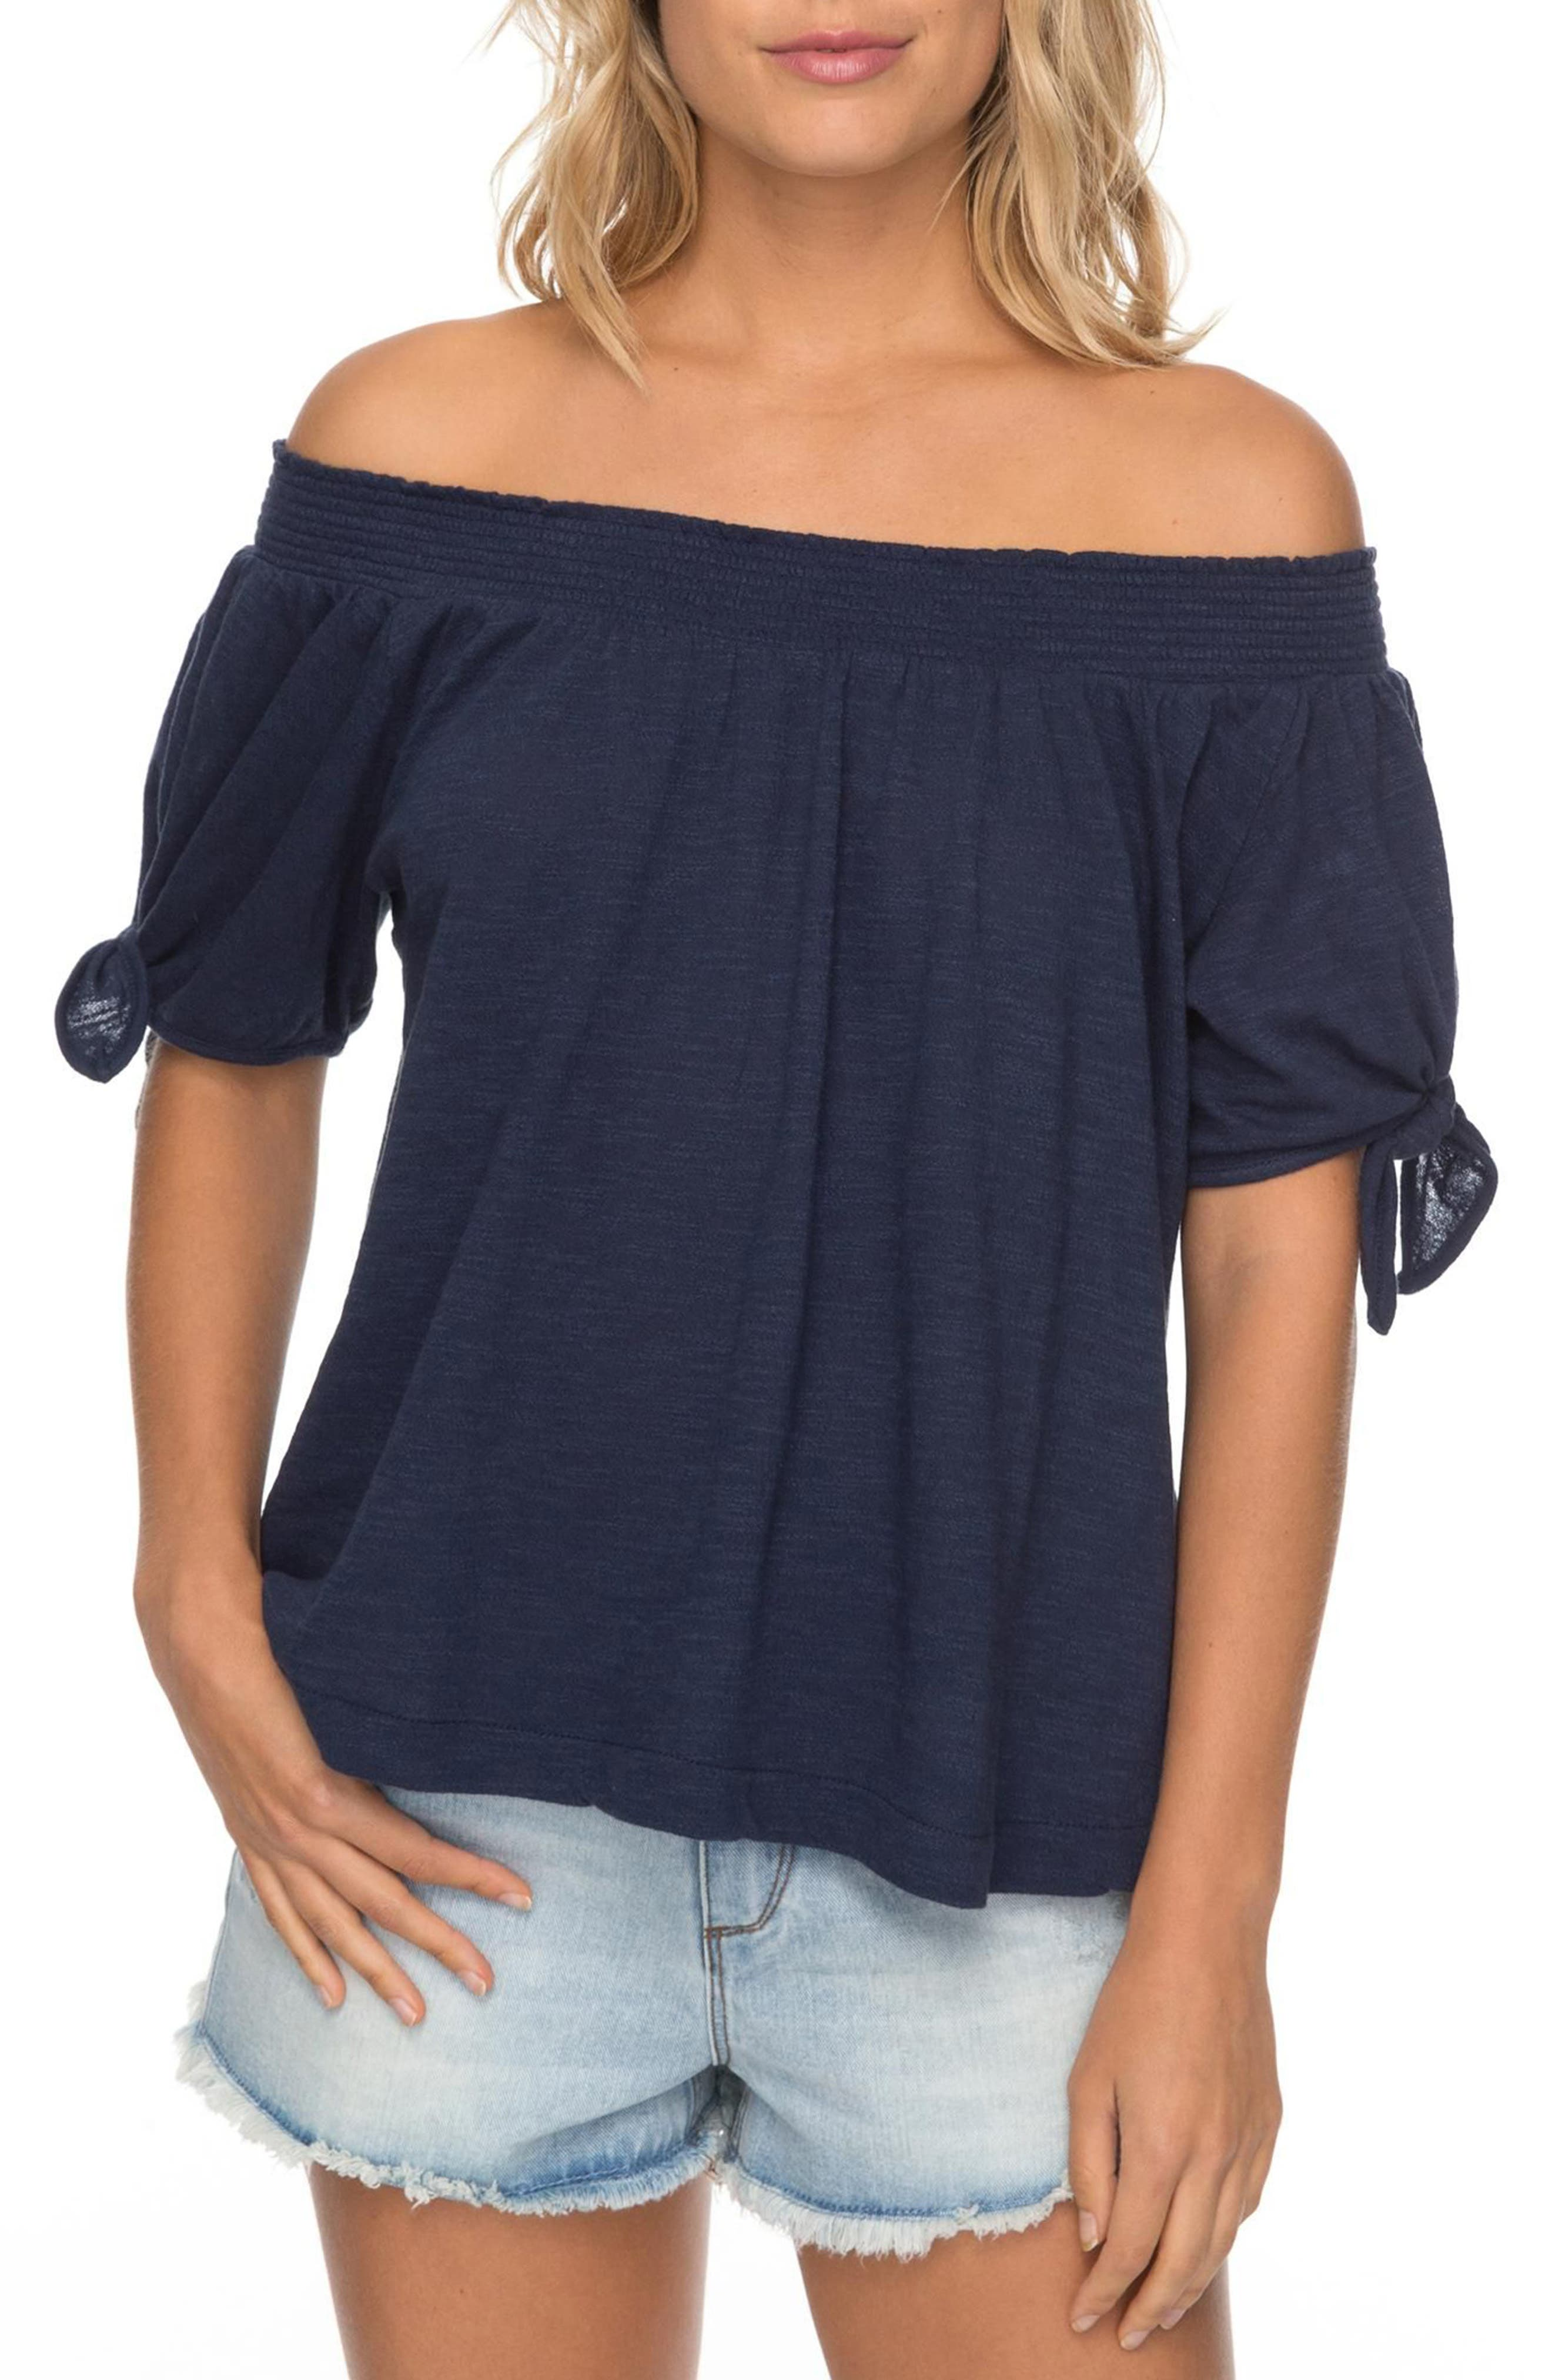 Roxy Caribbean Mood Off the Shoulder Top